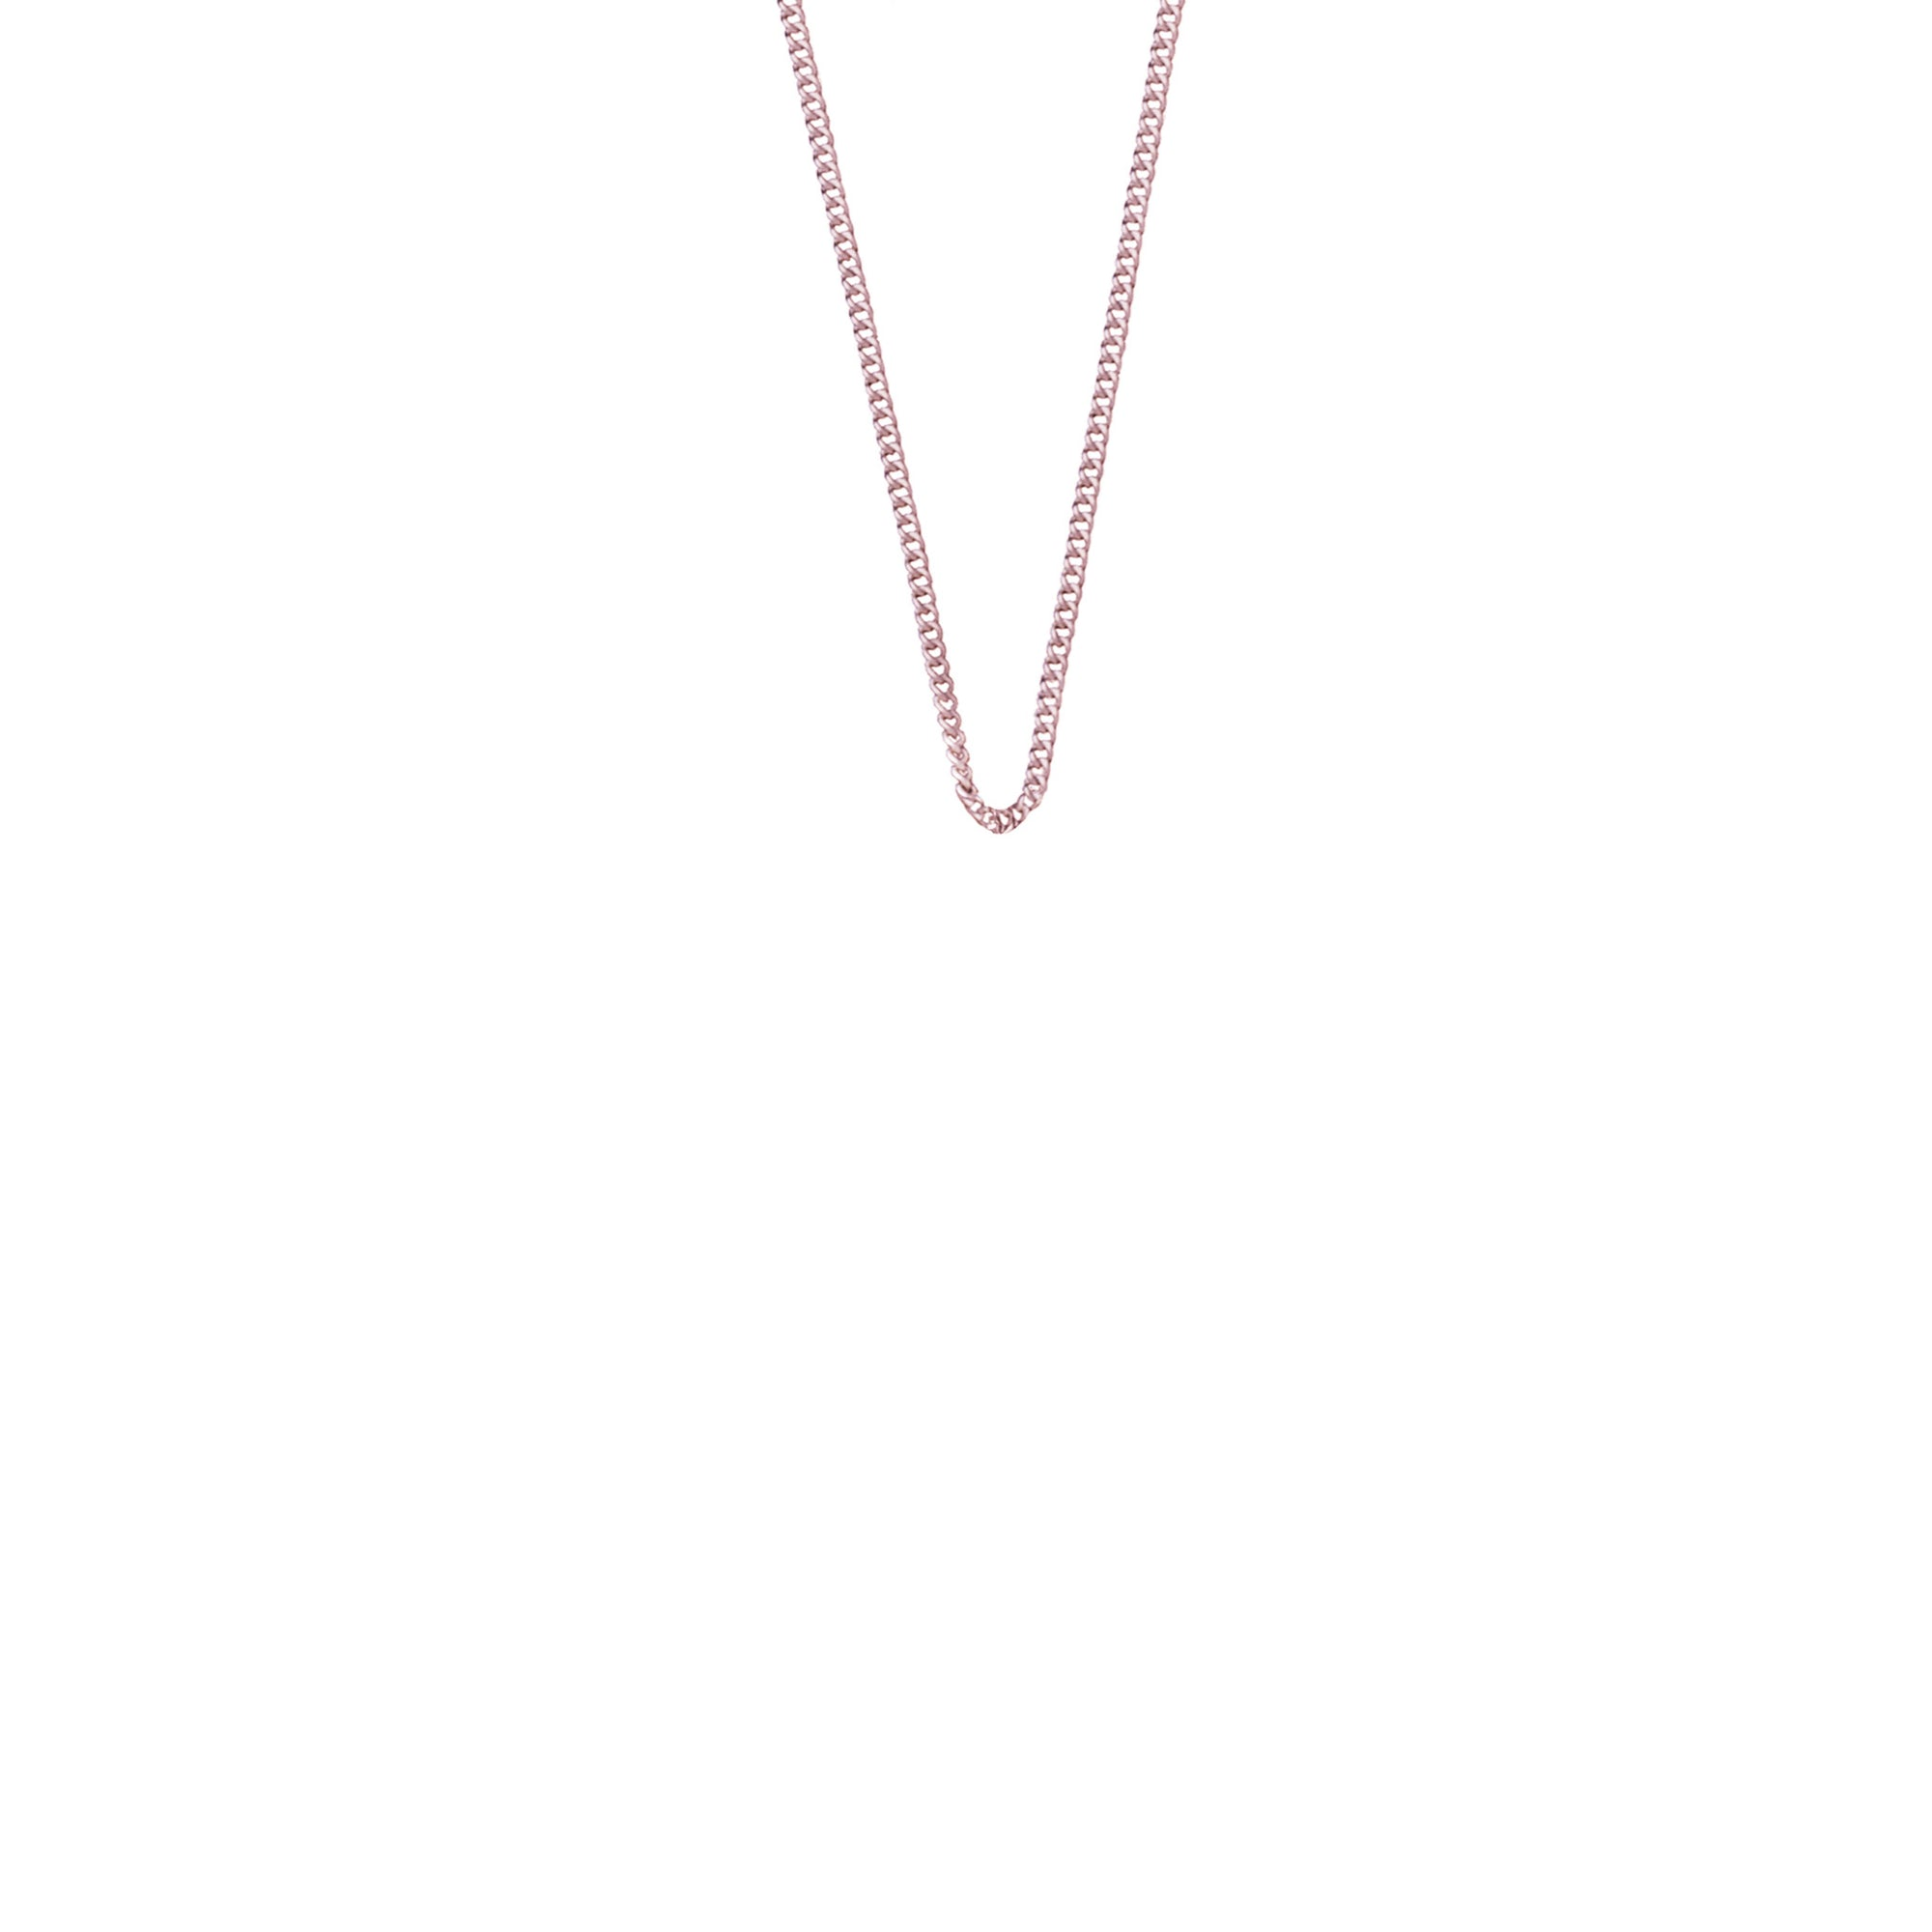 SIMPLE FINE CHAIN - To Add Charms onto (Rose Gold)